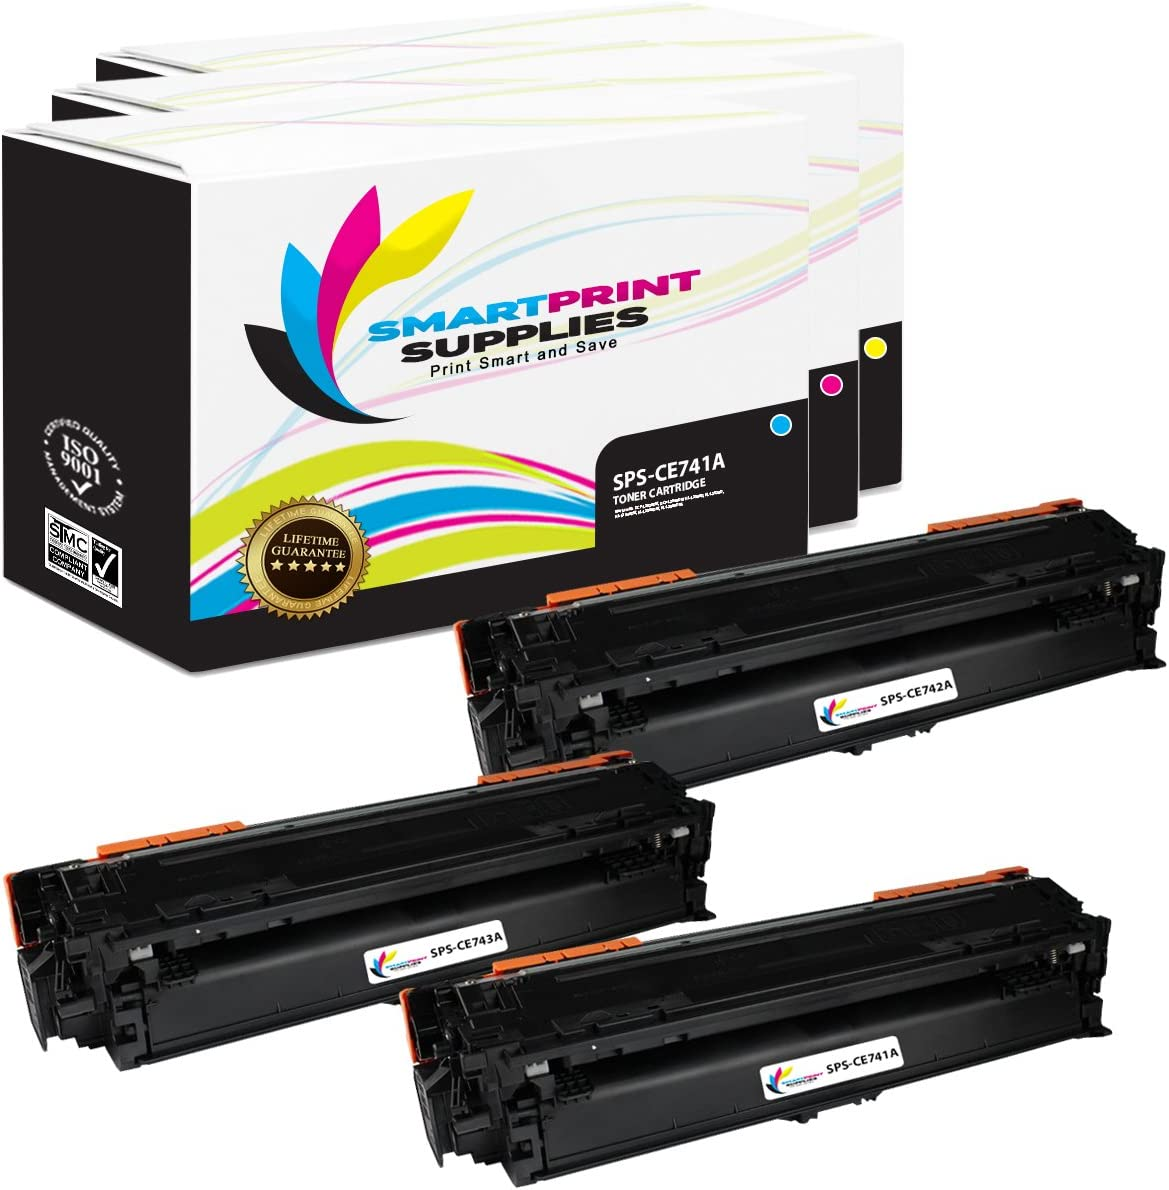 3 Pack CE741A Cyan, CE742A Magenta, CE743A Yellow Smart Print Supplies Compatible 307A Toner Cartridge Replacement for HP Laserjet CP5225DN CP5225N Printers